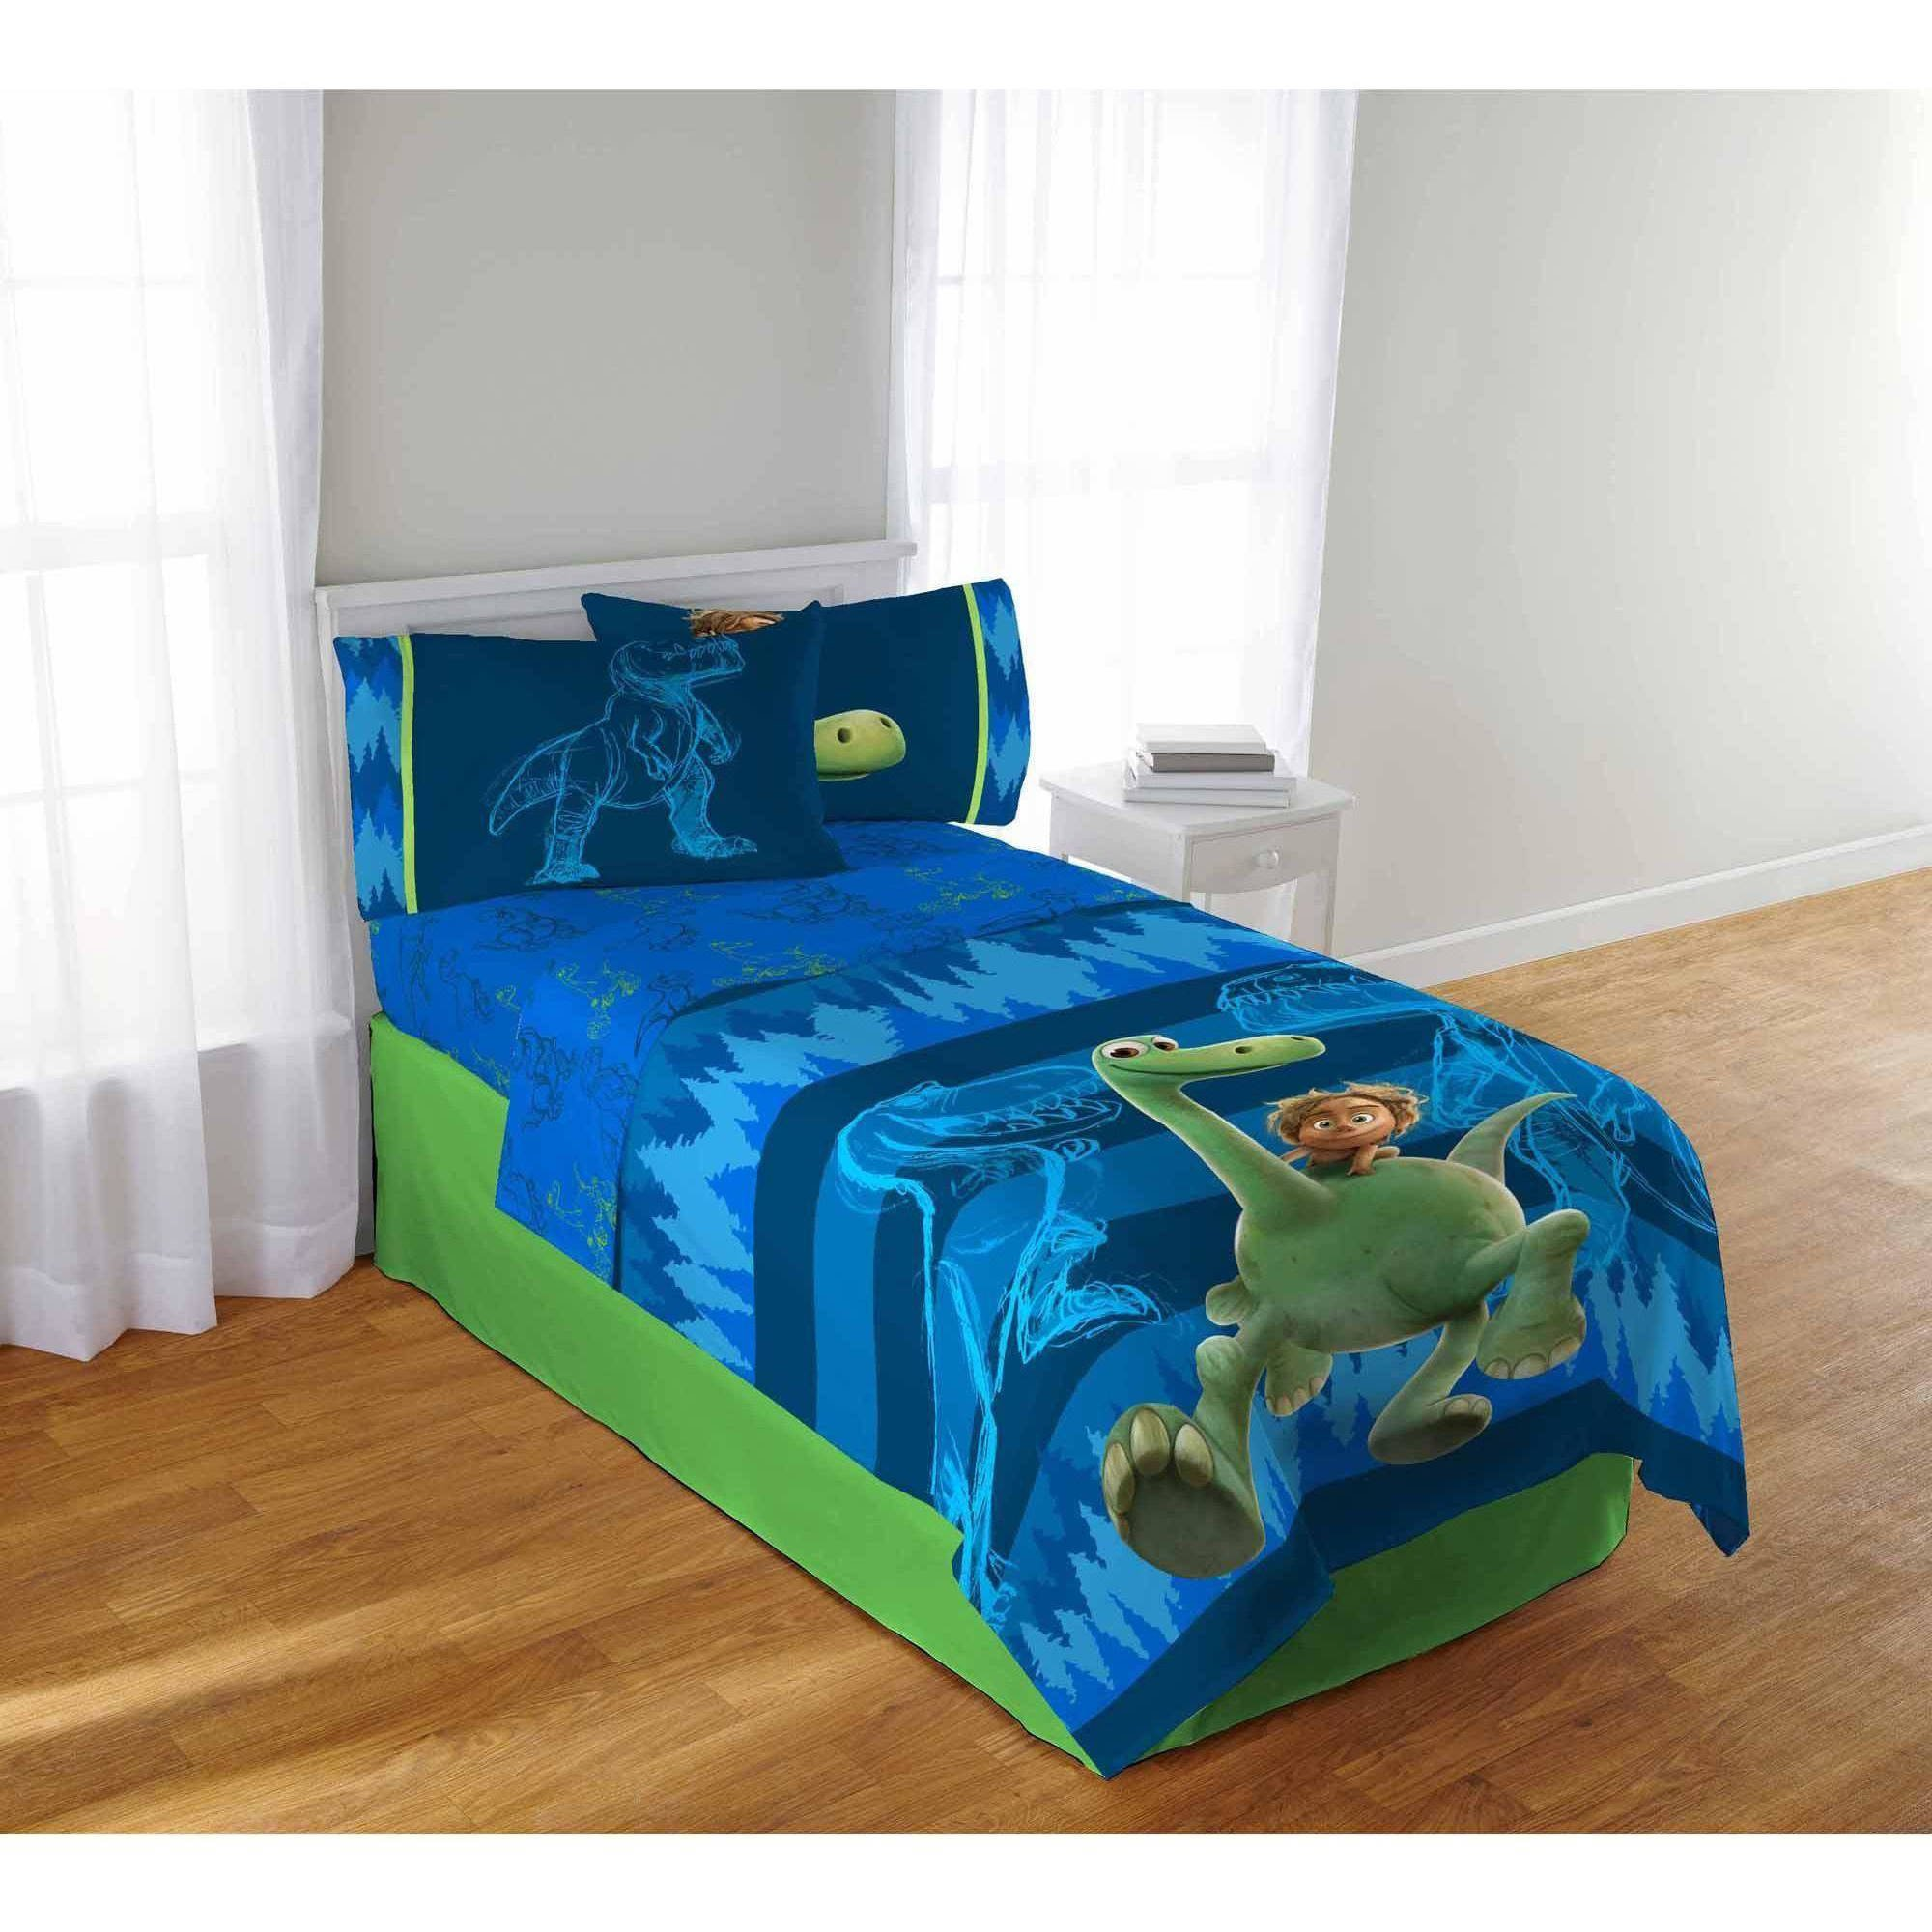 A&L 3 Piece Kids Blue Good Dinosaur Sheet Set Twin, Green Animal Print Bedding Arlo Spot Bed Sheets Movie Character Adventure Themed Soft Cozy Comfortable Stylish Durable, Polyester by A&L